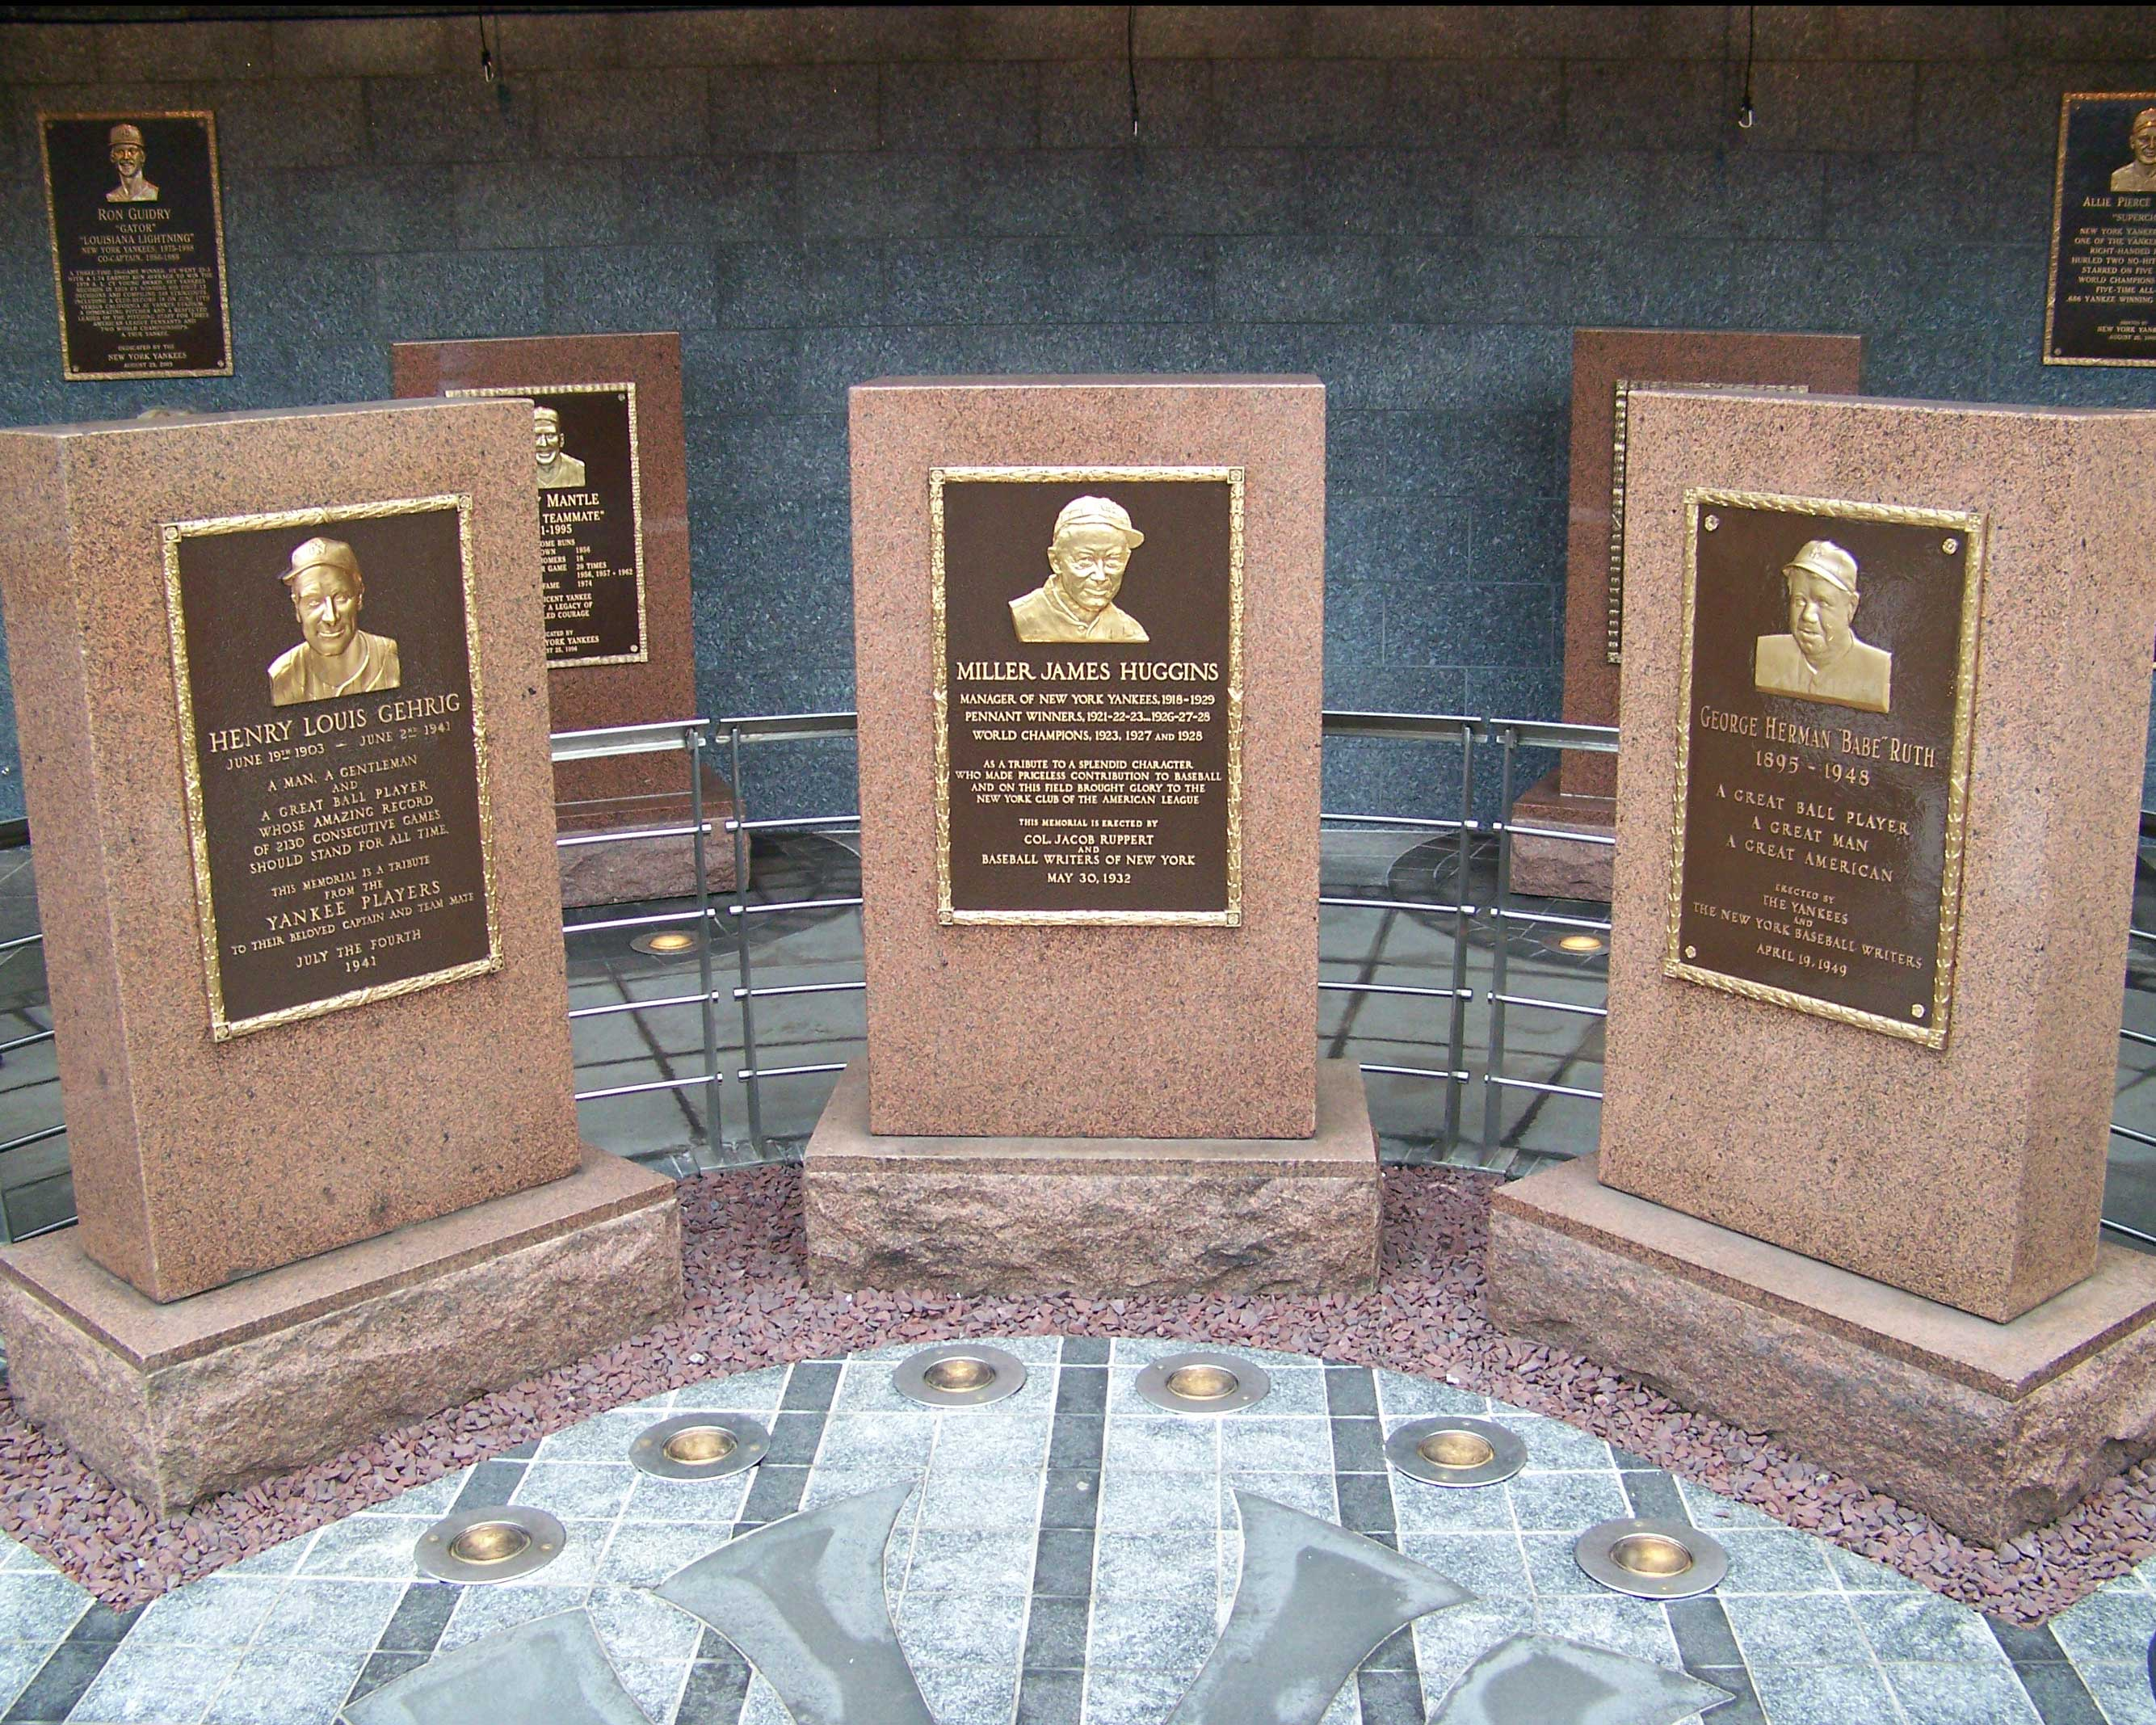 Monuments dedicated to Lou Gehrig, Babe Ruth, and Manager Miller James Huggins at Monument Park.